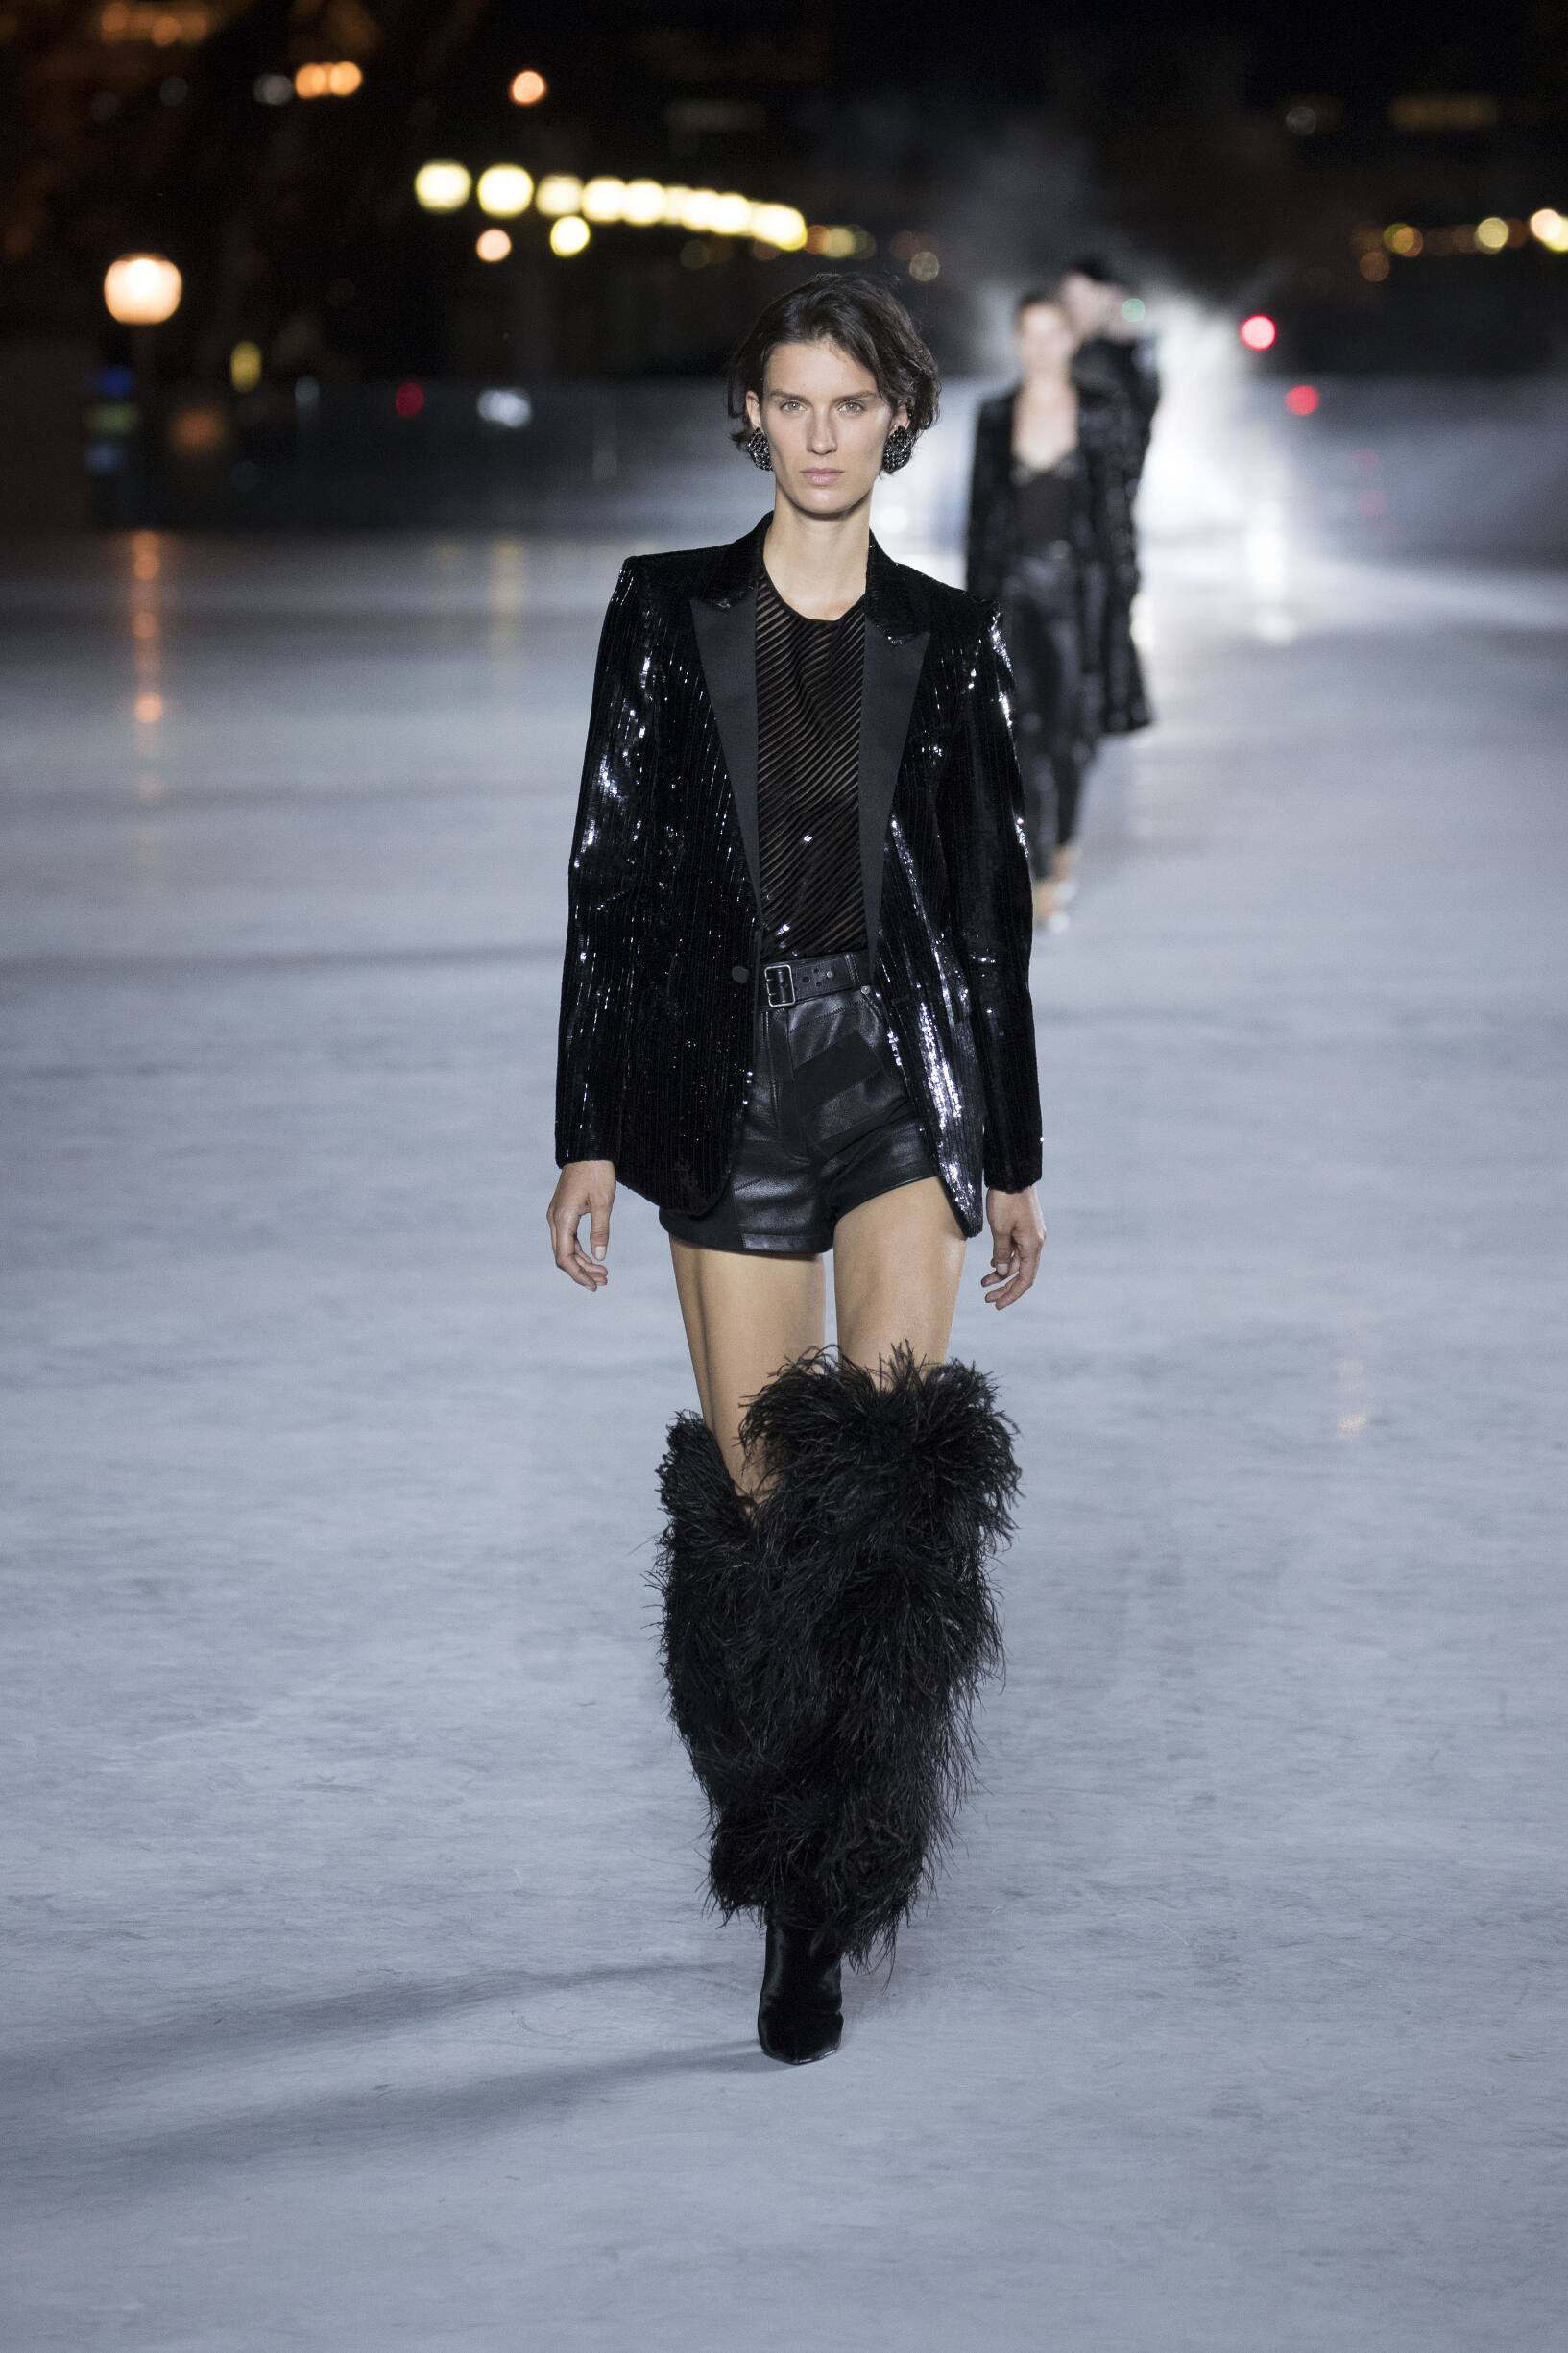 Saint Laurent Womenswear Collection Style